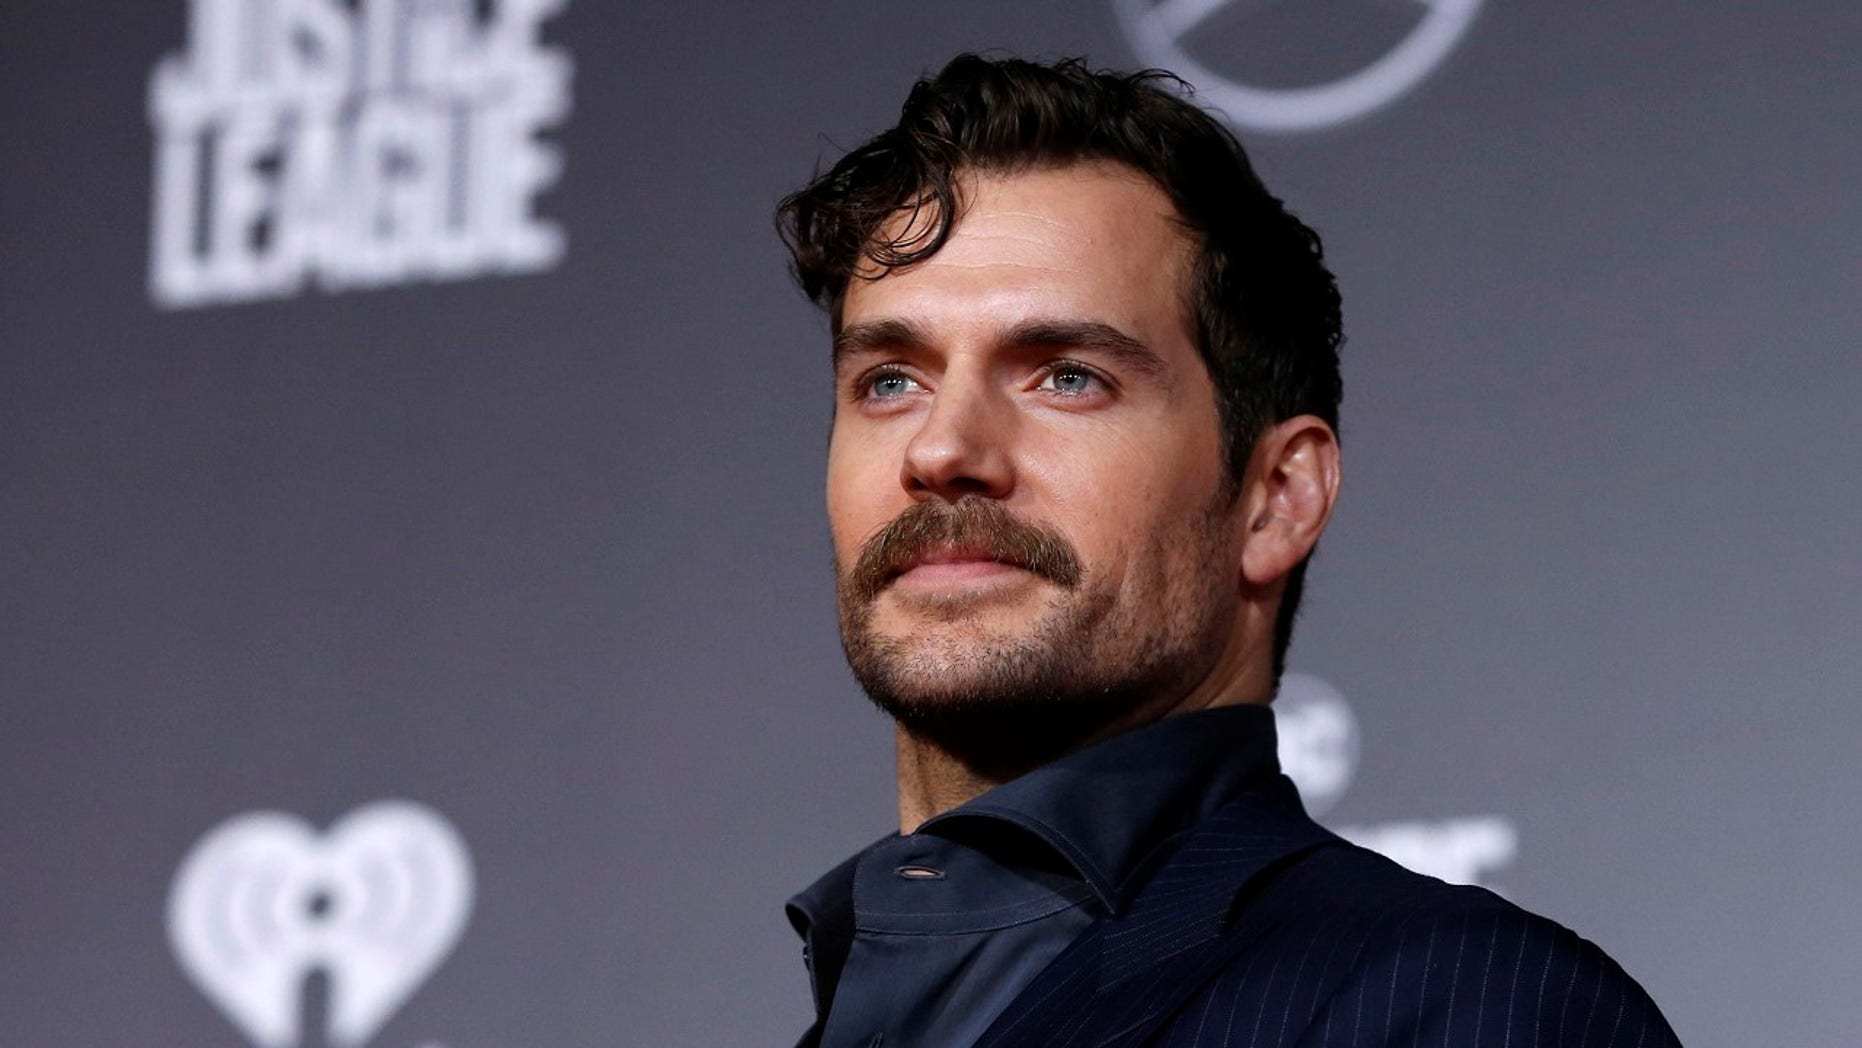 Henry Cavill appeared in a drastic new look to promote 'The Witcher.'